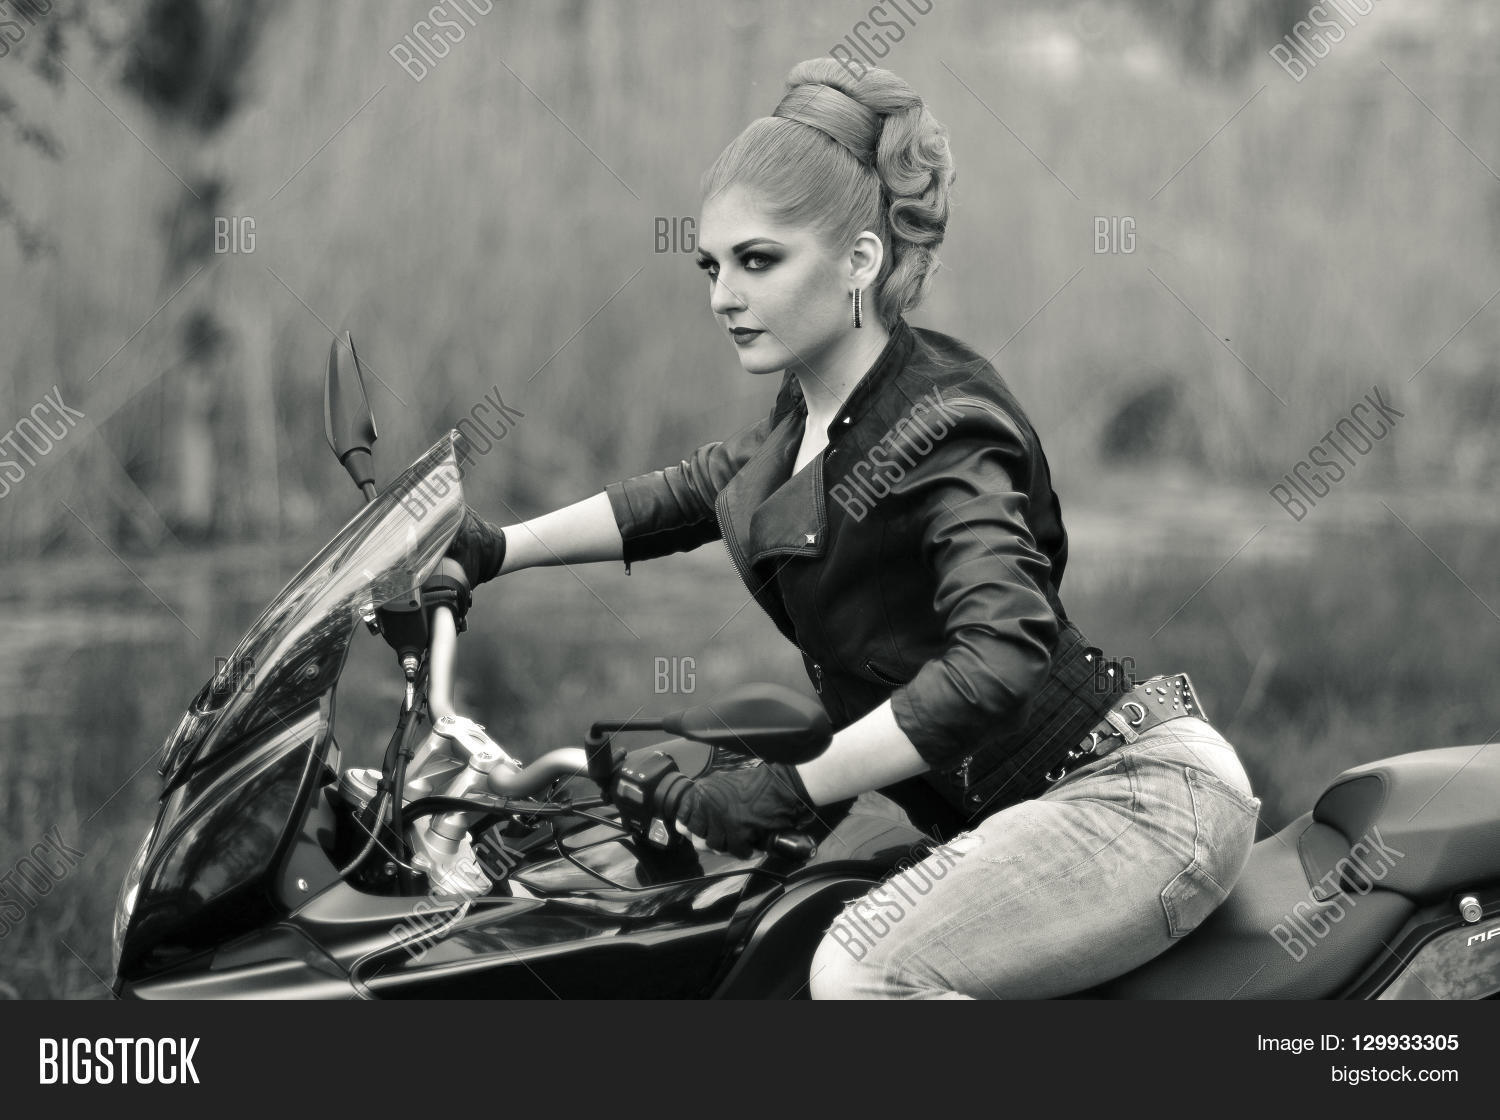 Black and white photo professional biker girl fast rider sitting on black